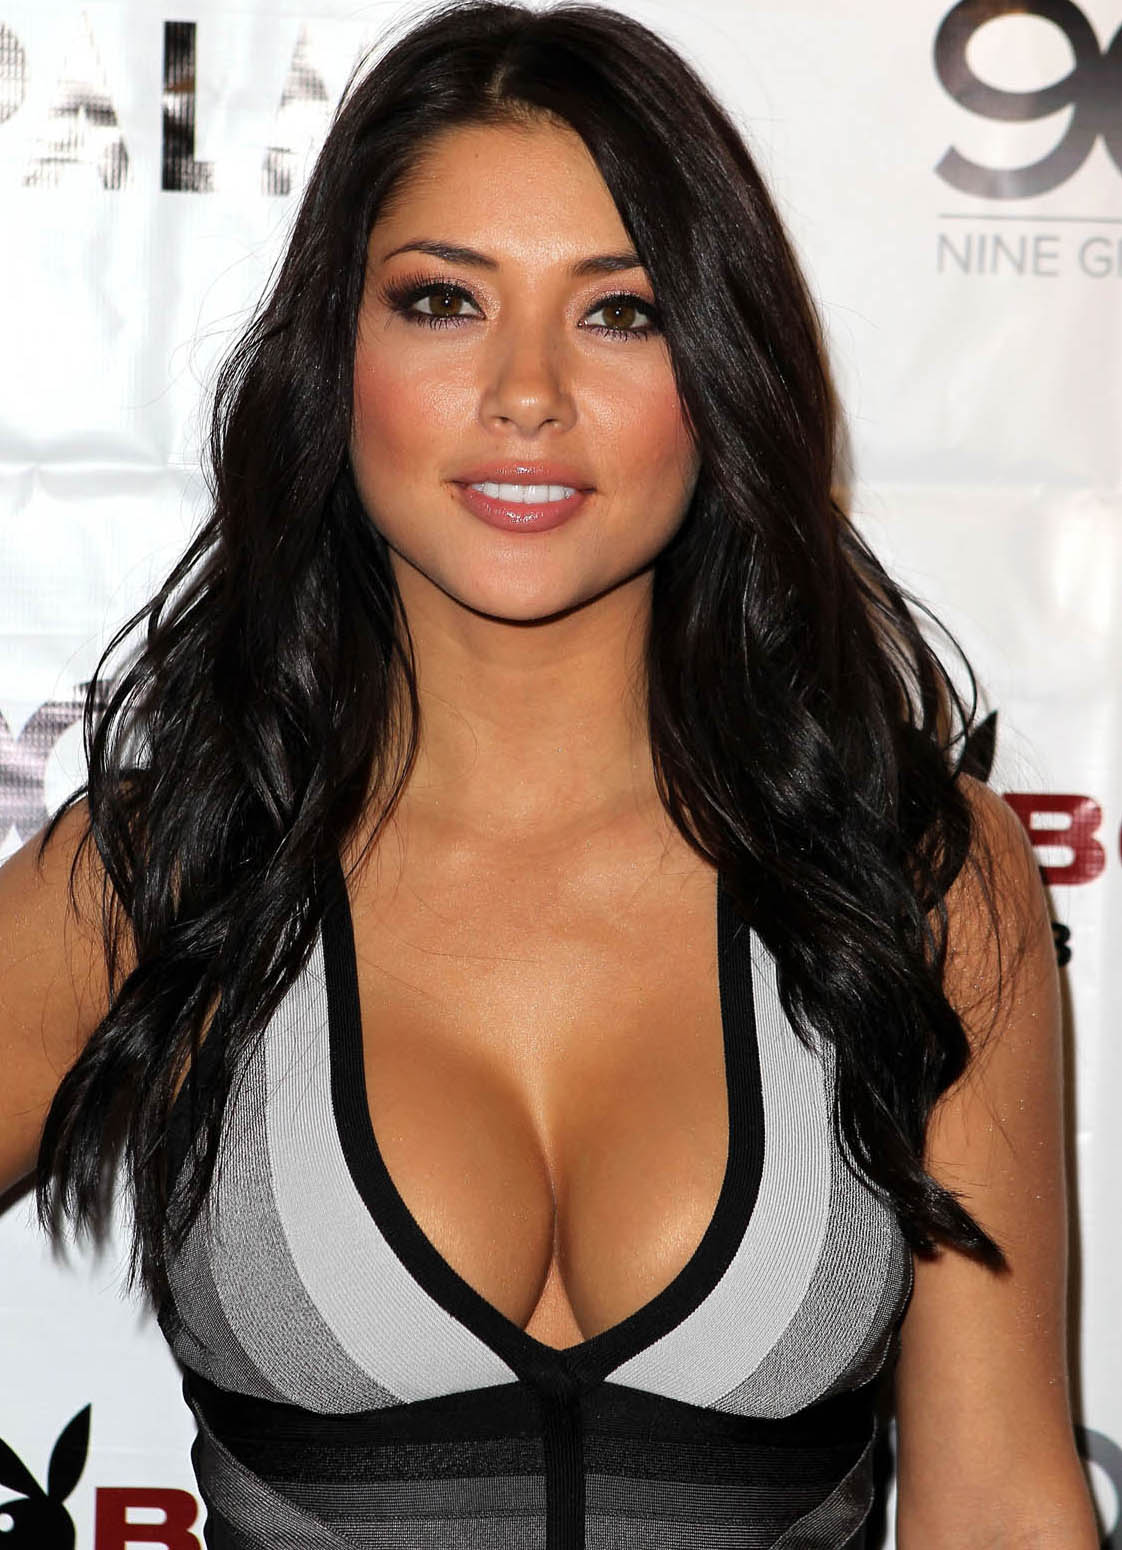 Cleavage Arianny Celeste nudes (23 images), Tits